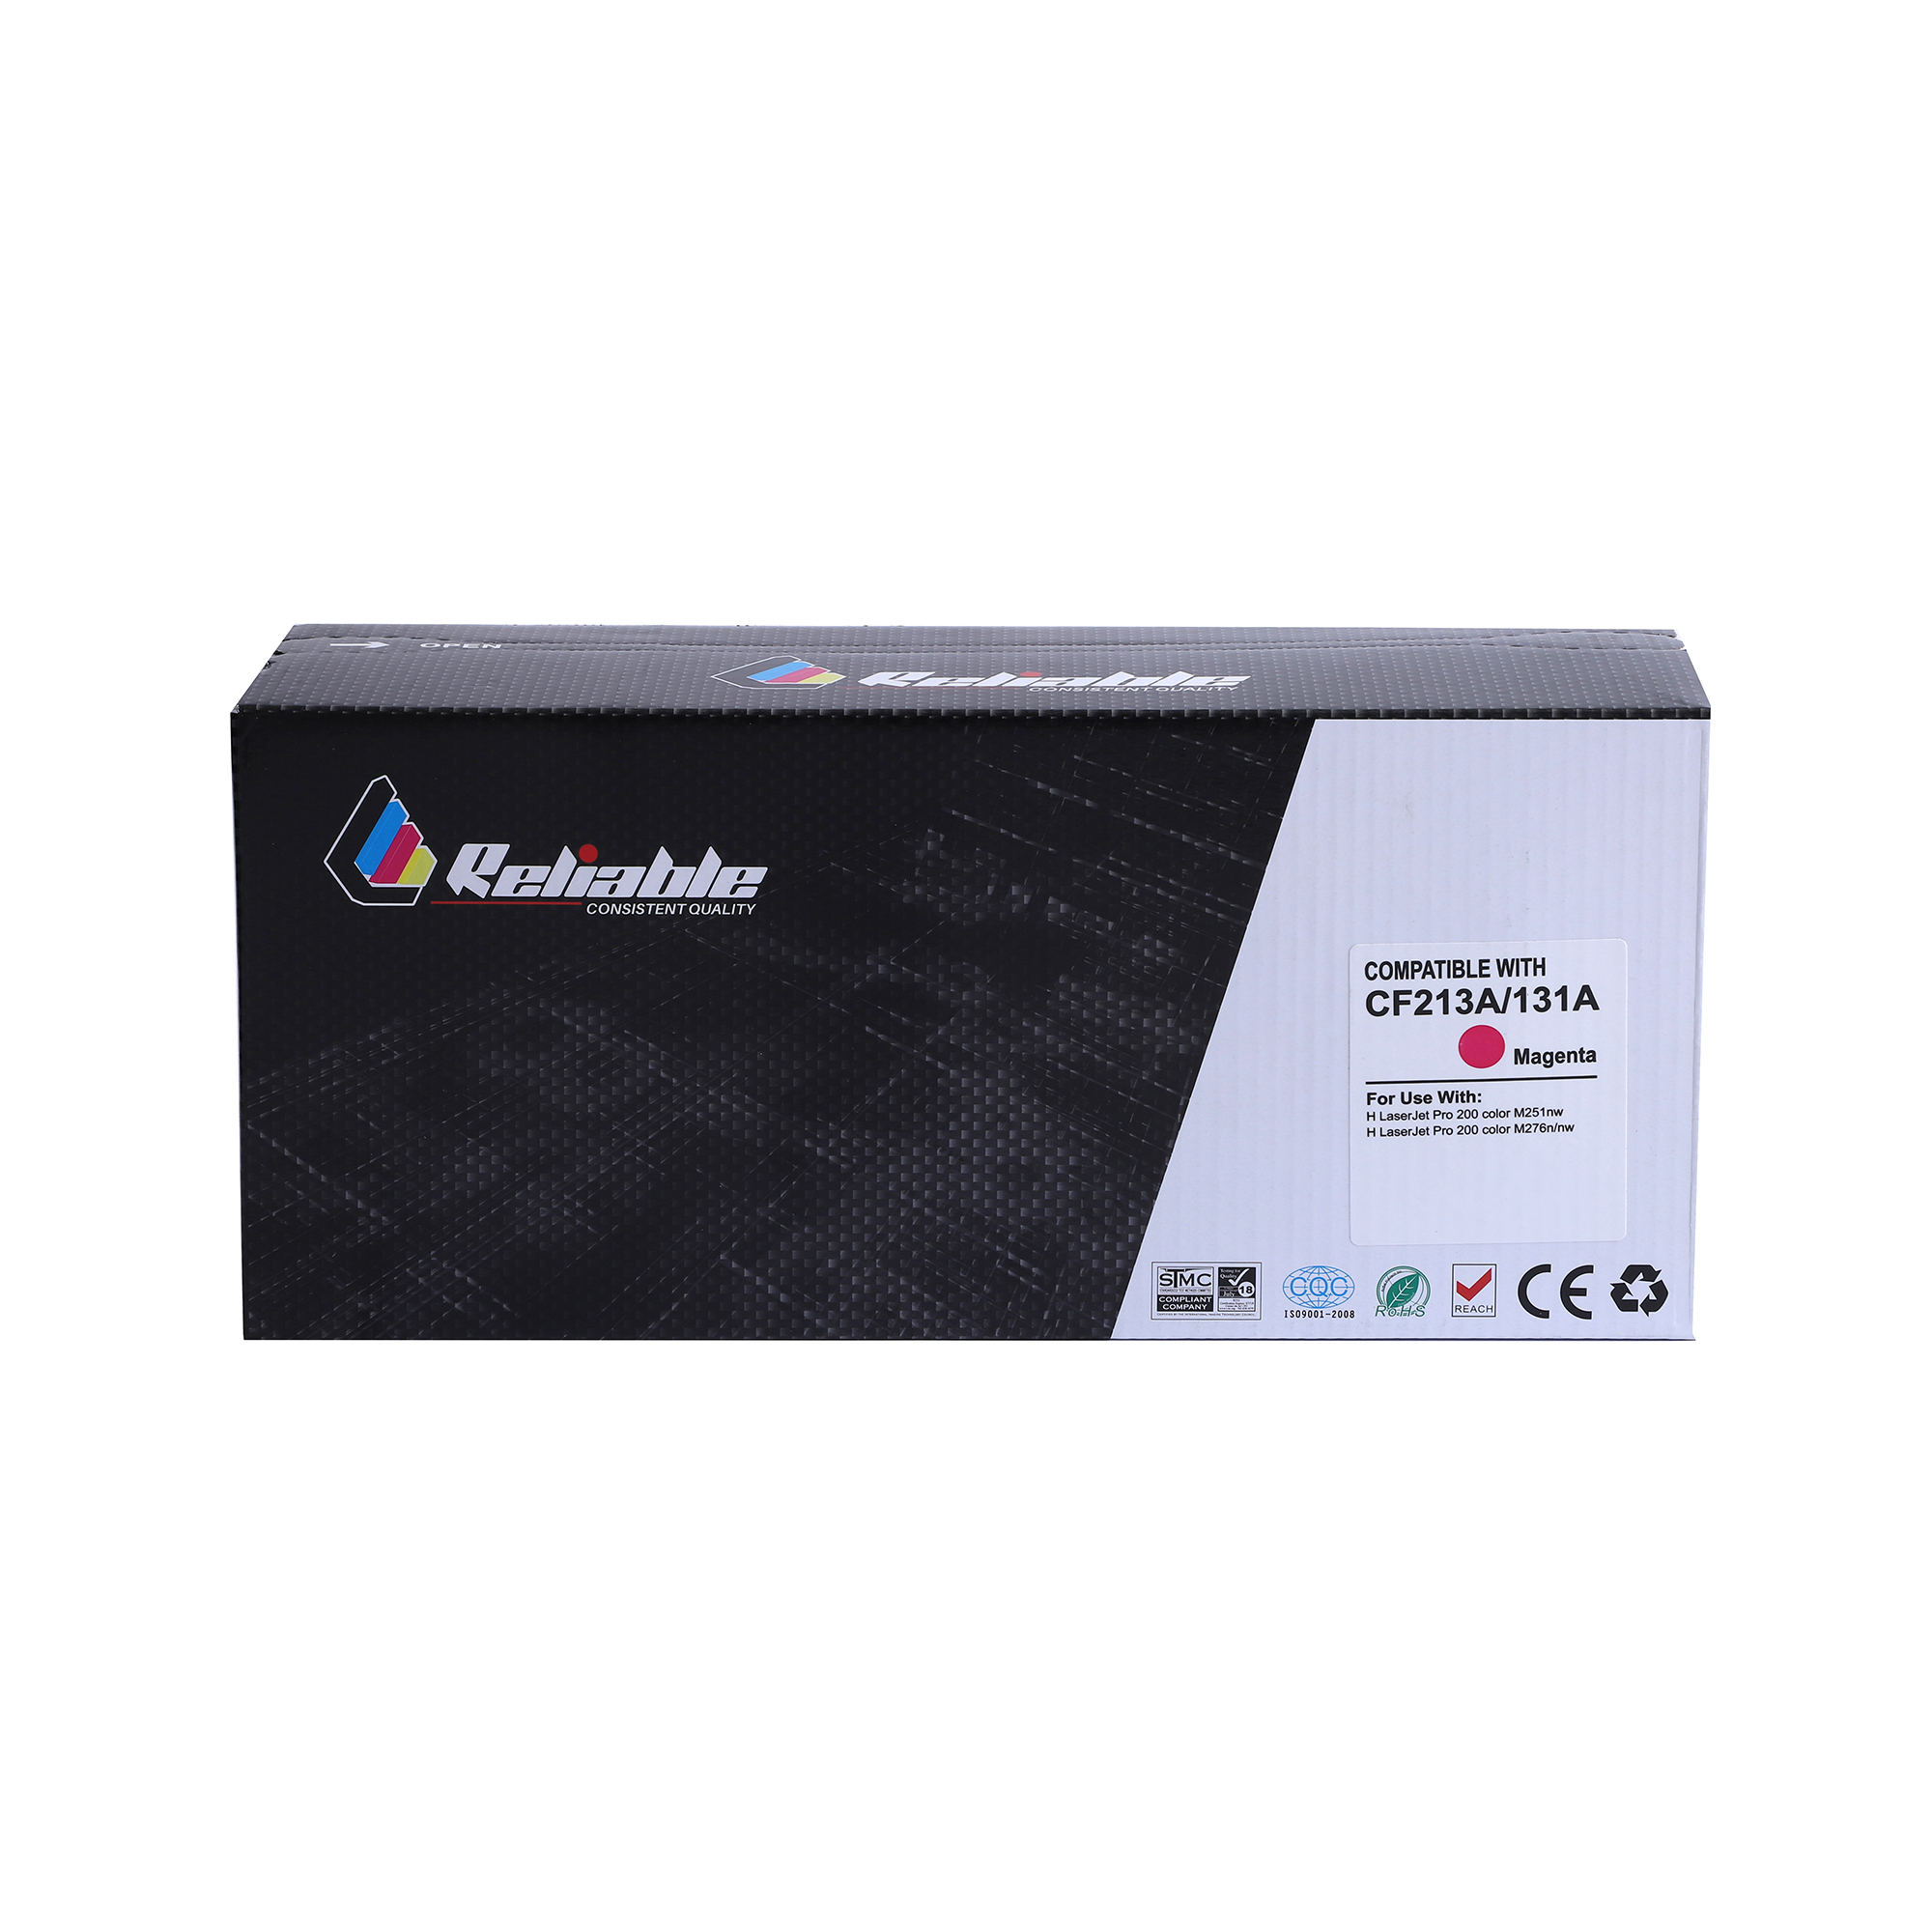 Reliable 125A (CB543A) / 131A (CF213A) / 128A (CE323A) Compatible Toner Cartridge - Magenta